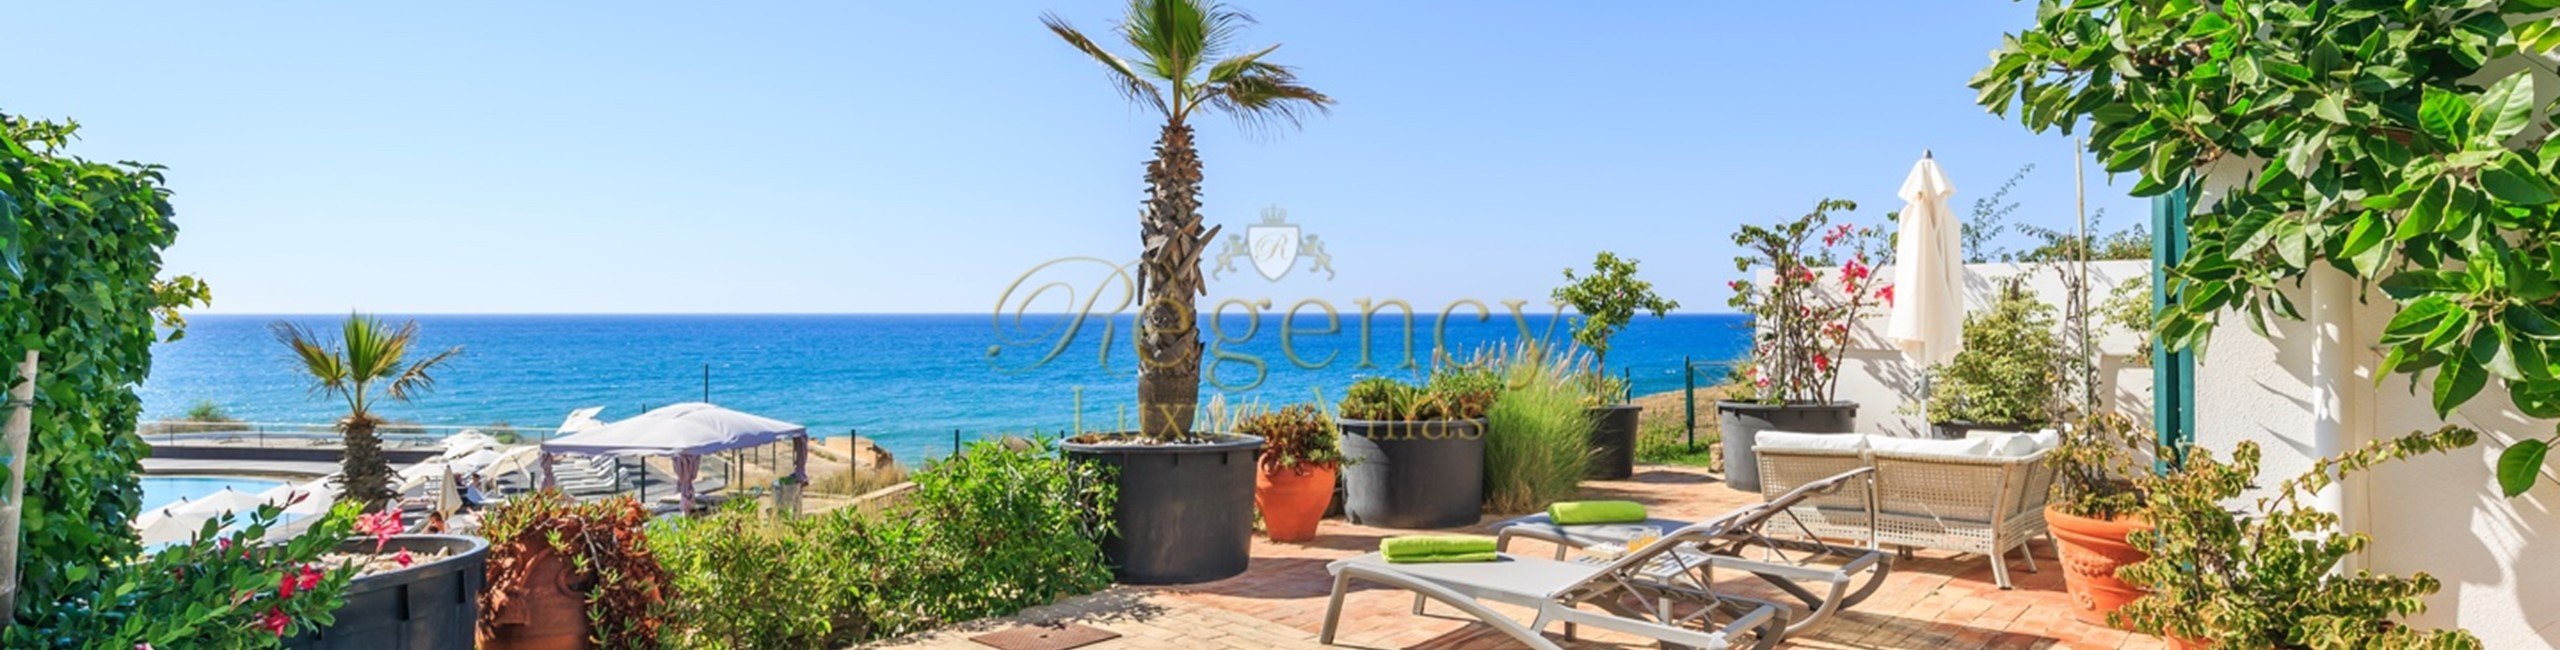 Villa To Rent With Pool And Sea View In Vale Do Lobo